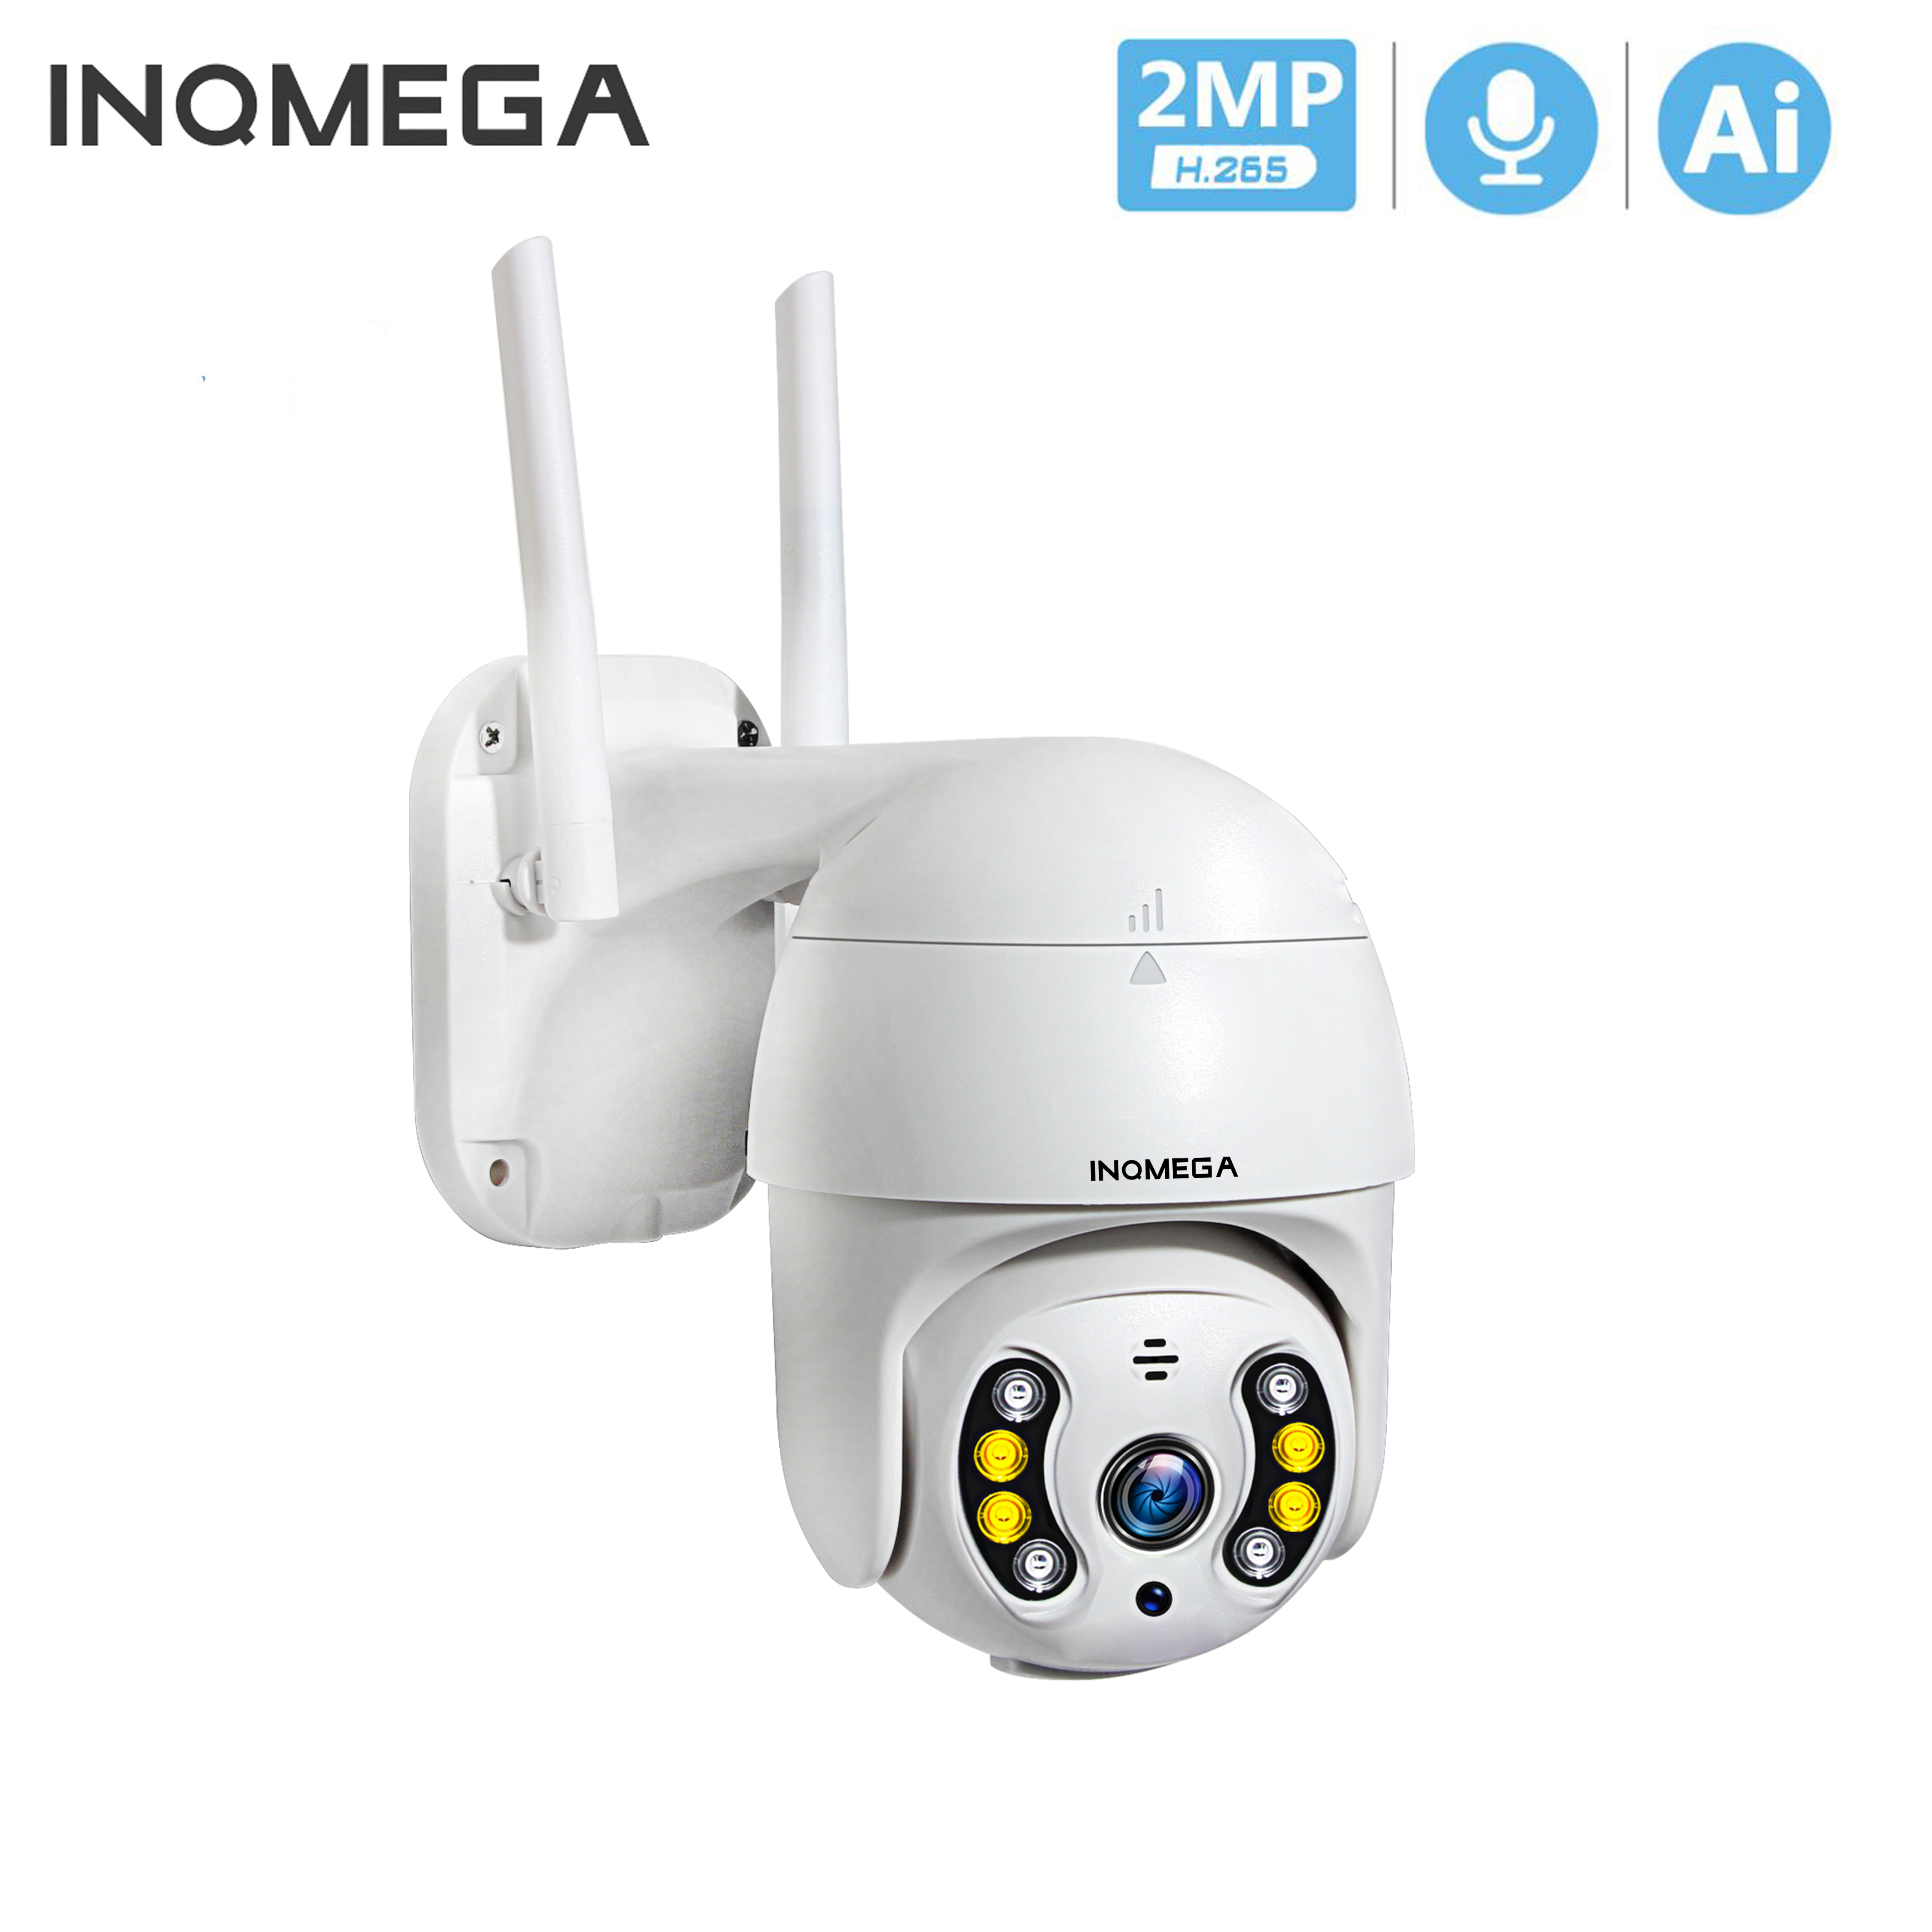 INQMEGA 1080P PTZ Wireless IP Camera Outdoor Waterproof 4X Digital Zoom Speed Dome 1 Inch Mini WiFi Security CCTV Camera ISCEE